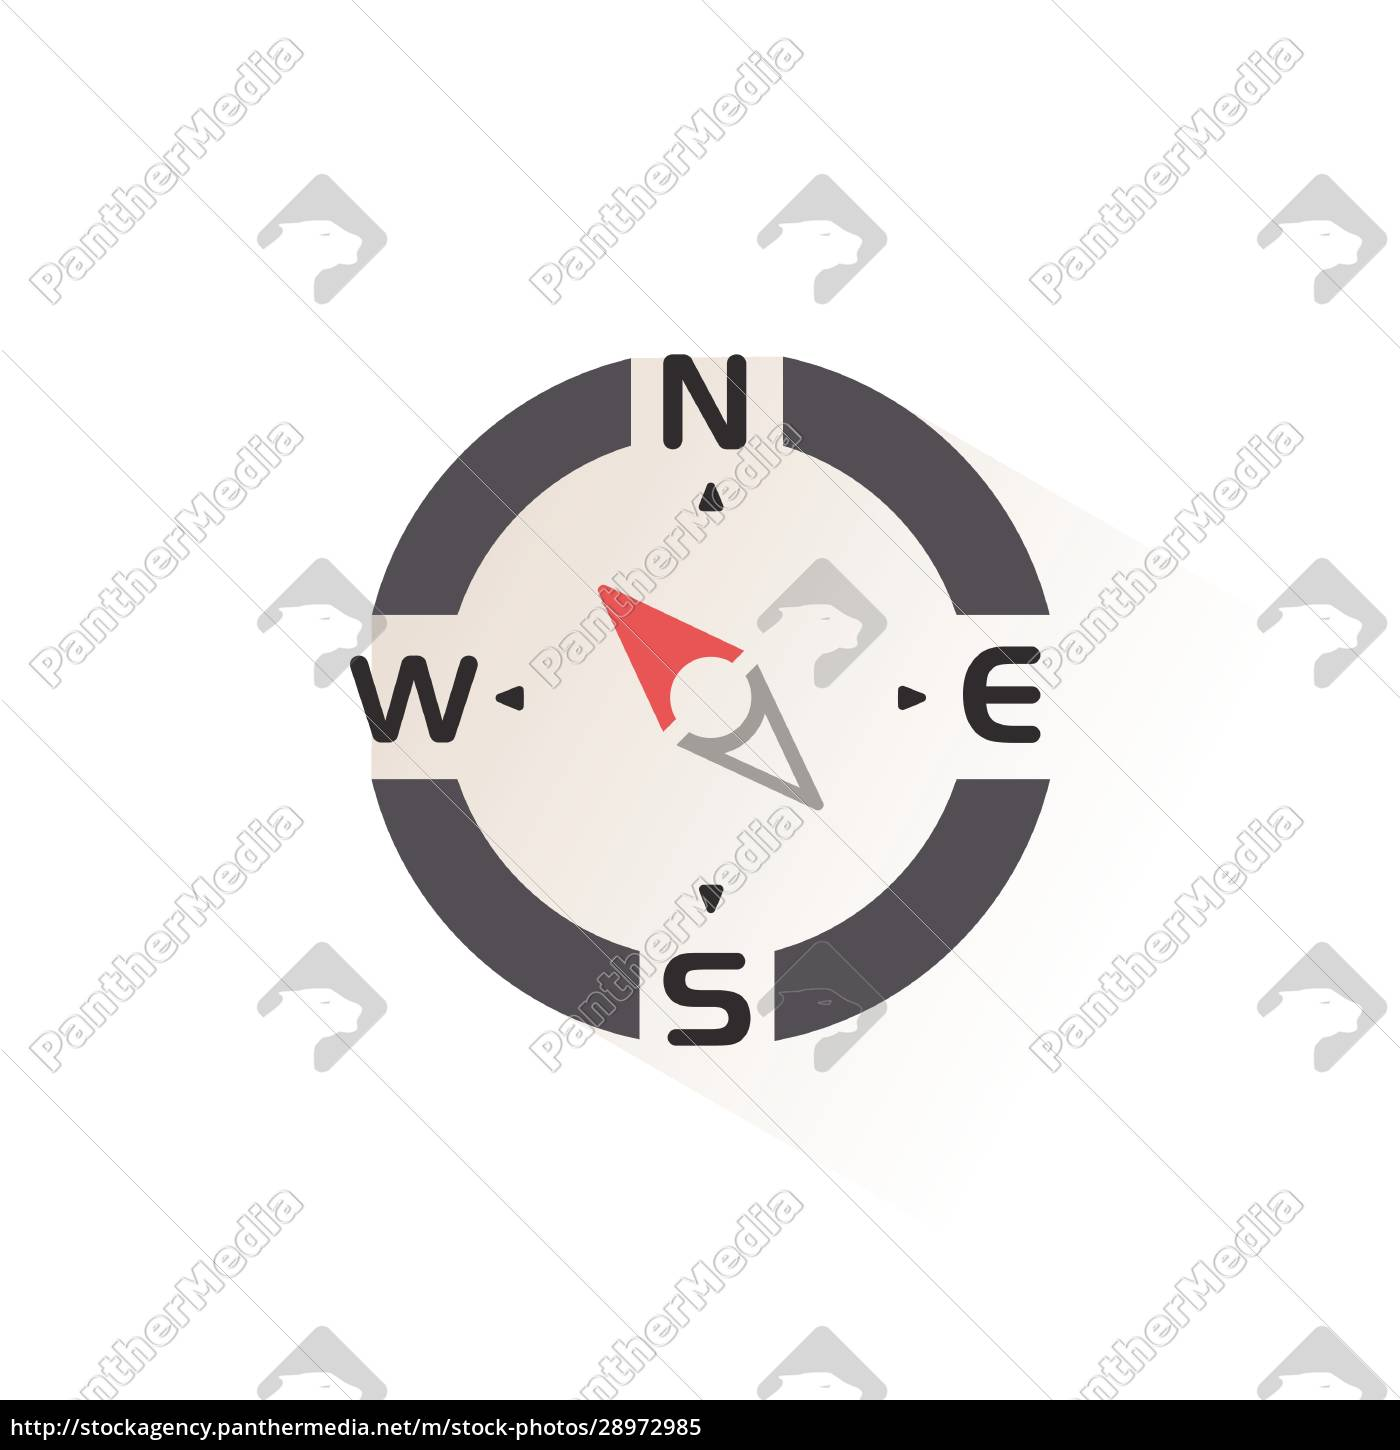 compass., north, west, direction., isolated, color - 28972985